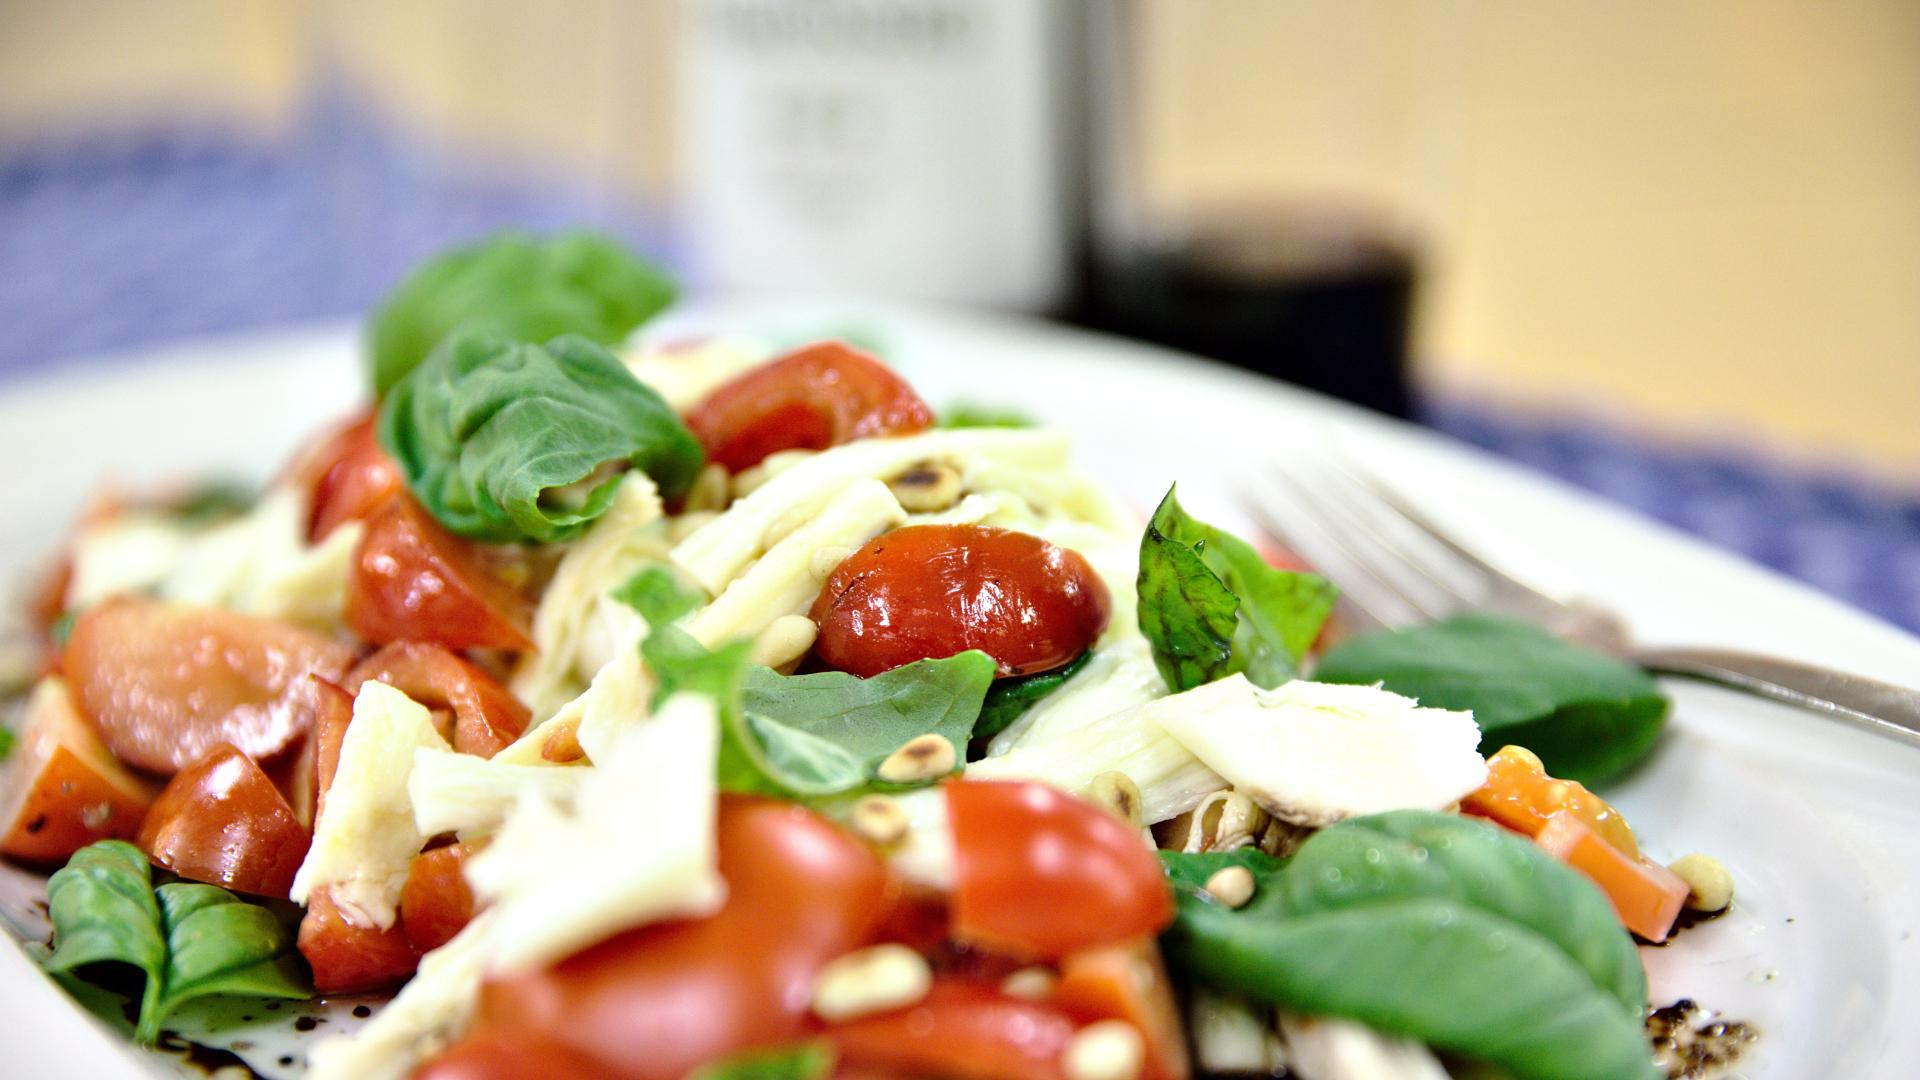 Caprese salad with tomatoes and basil from the greenhouse